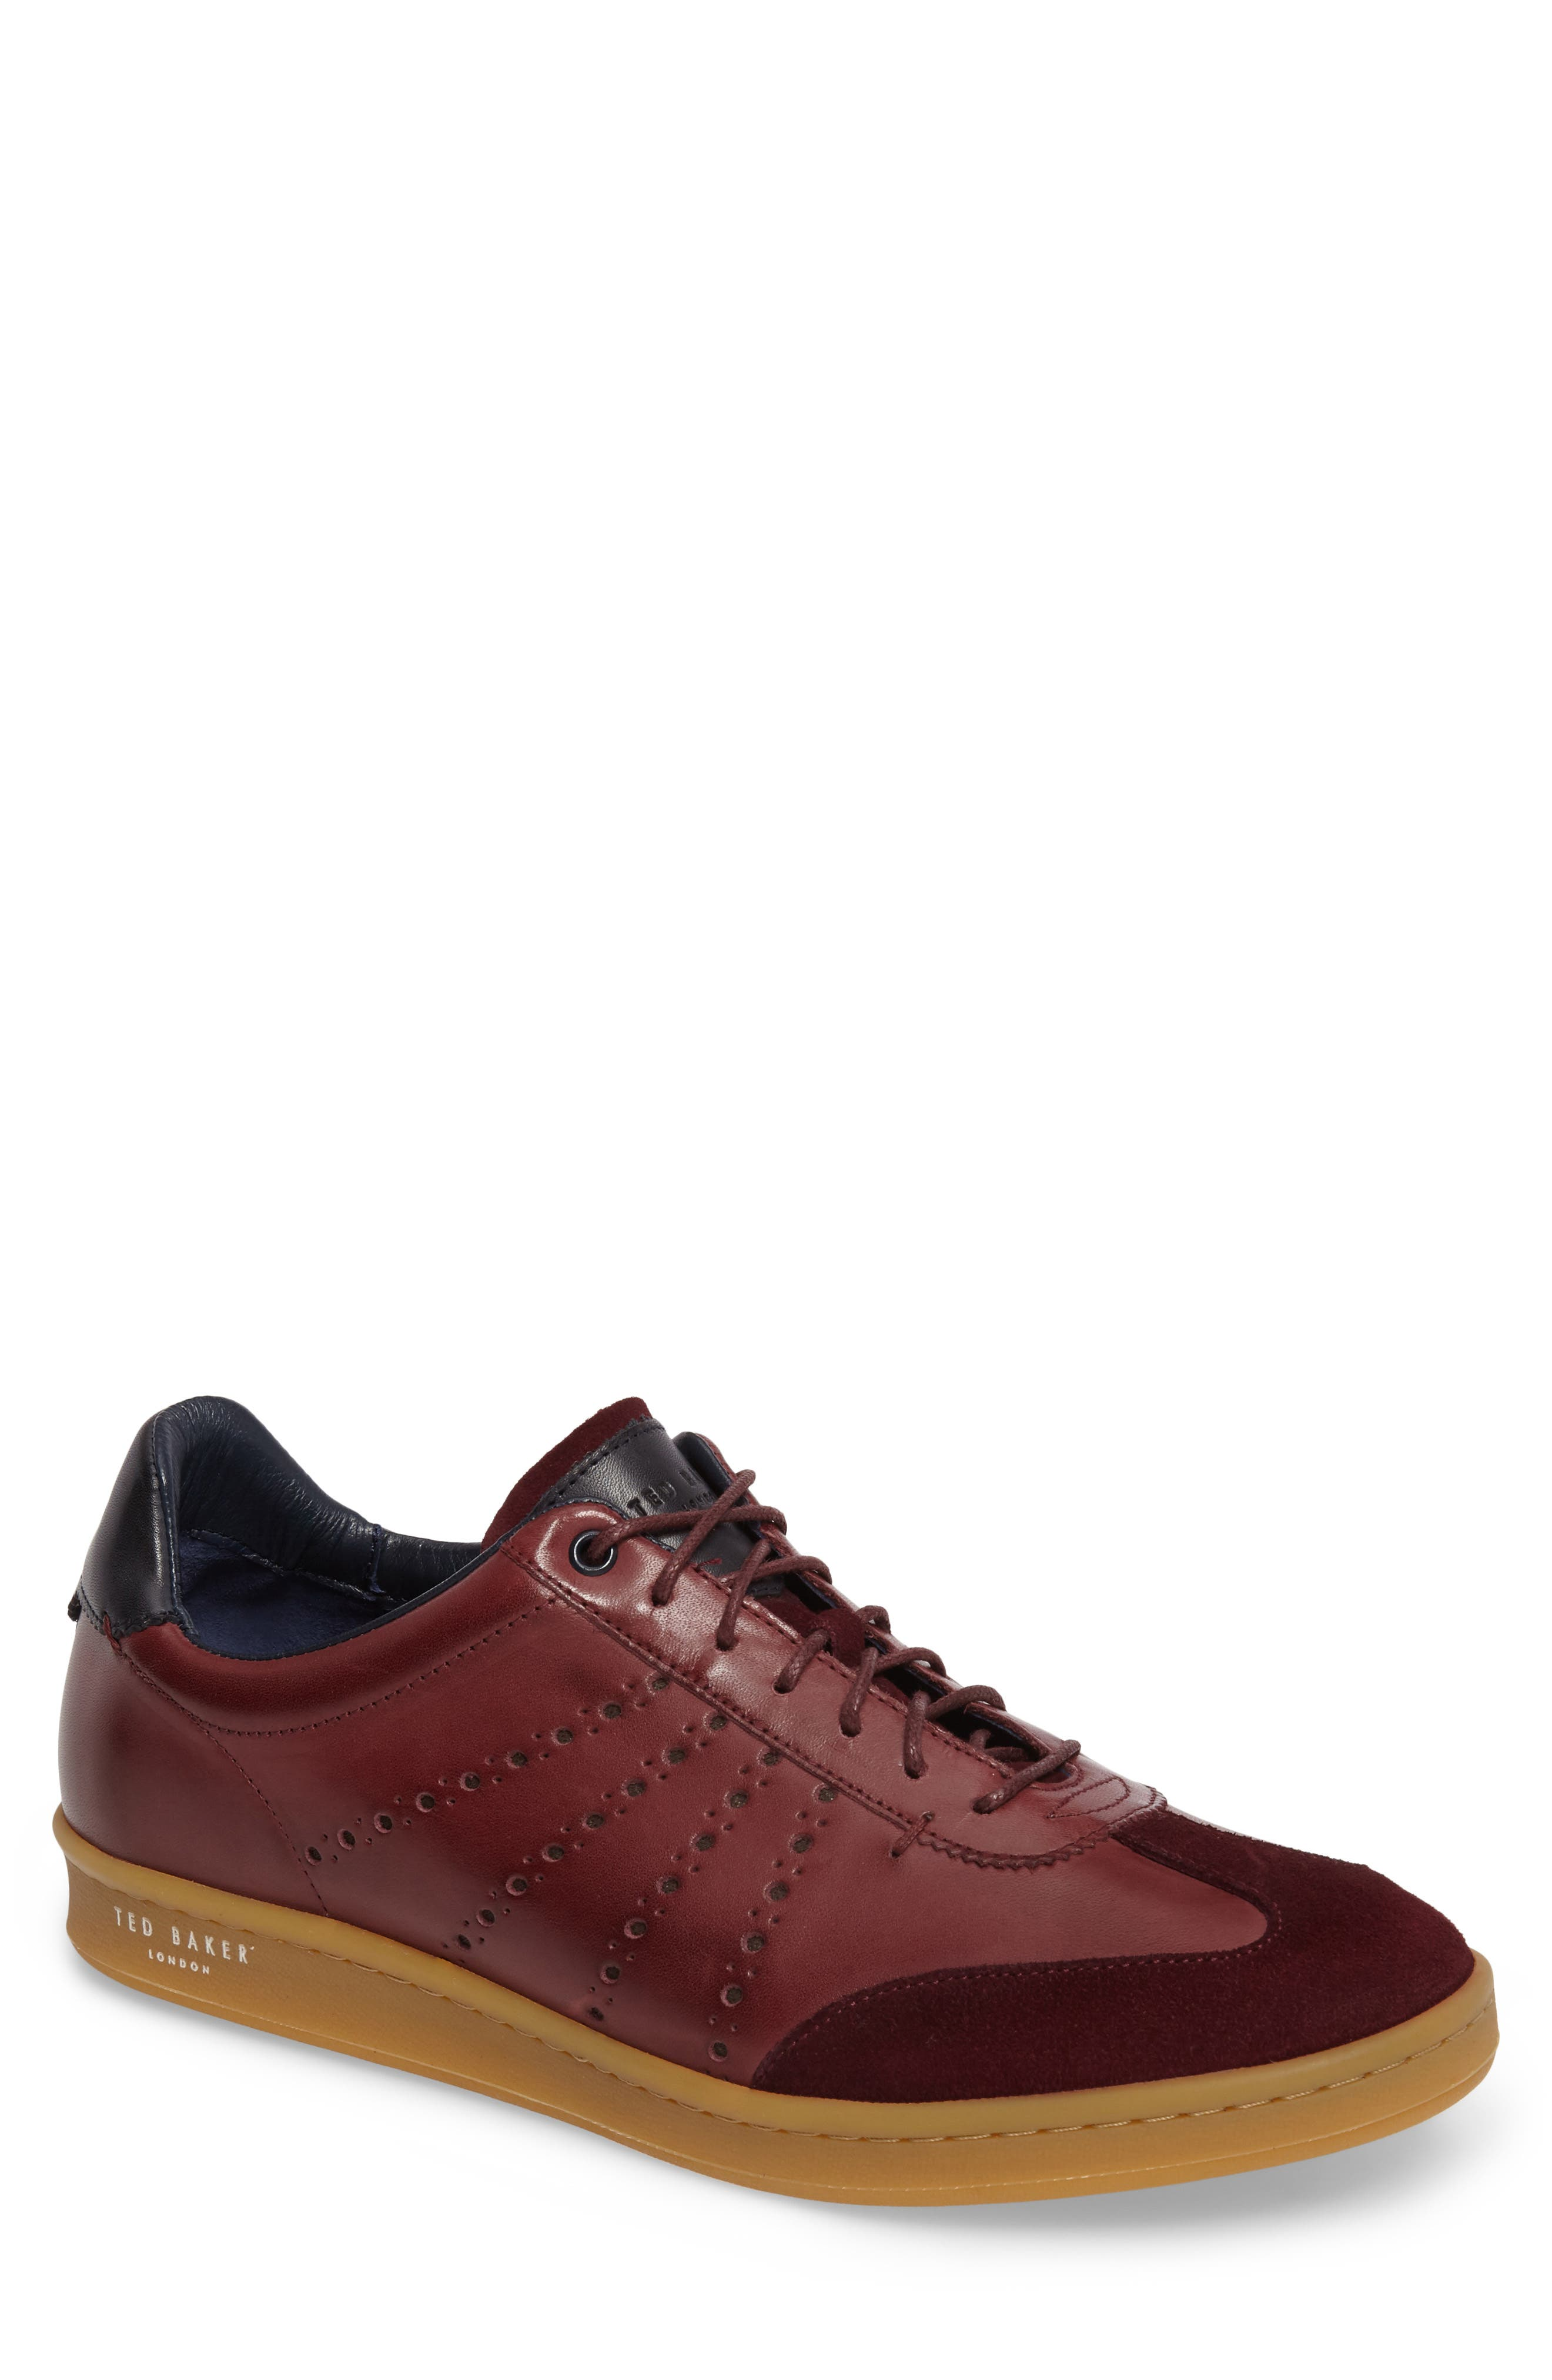 Orlee Sneaker,                             Main thumbnail 5, color,